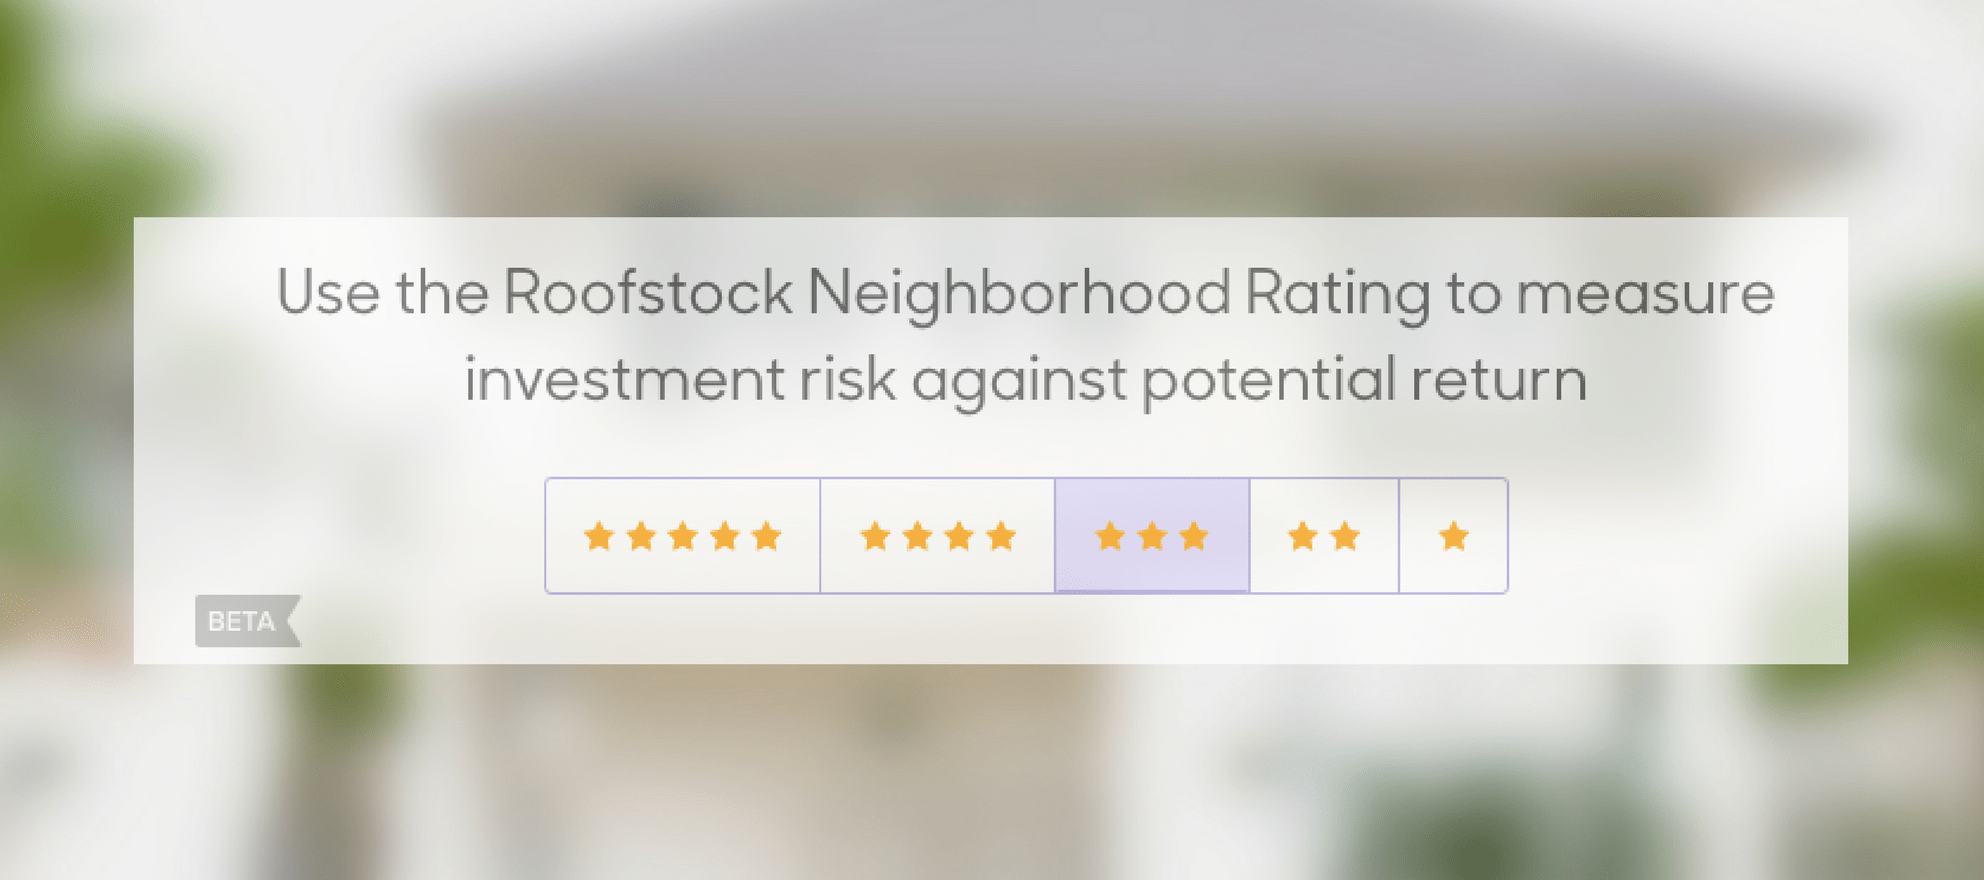 Roofstock's neighborhood ratings measure real estate investment risk